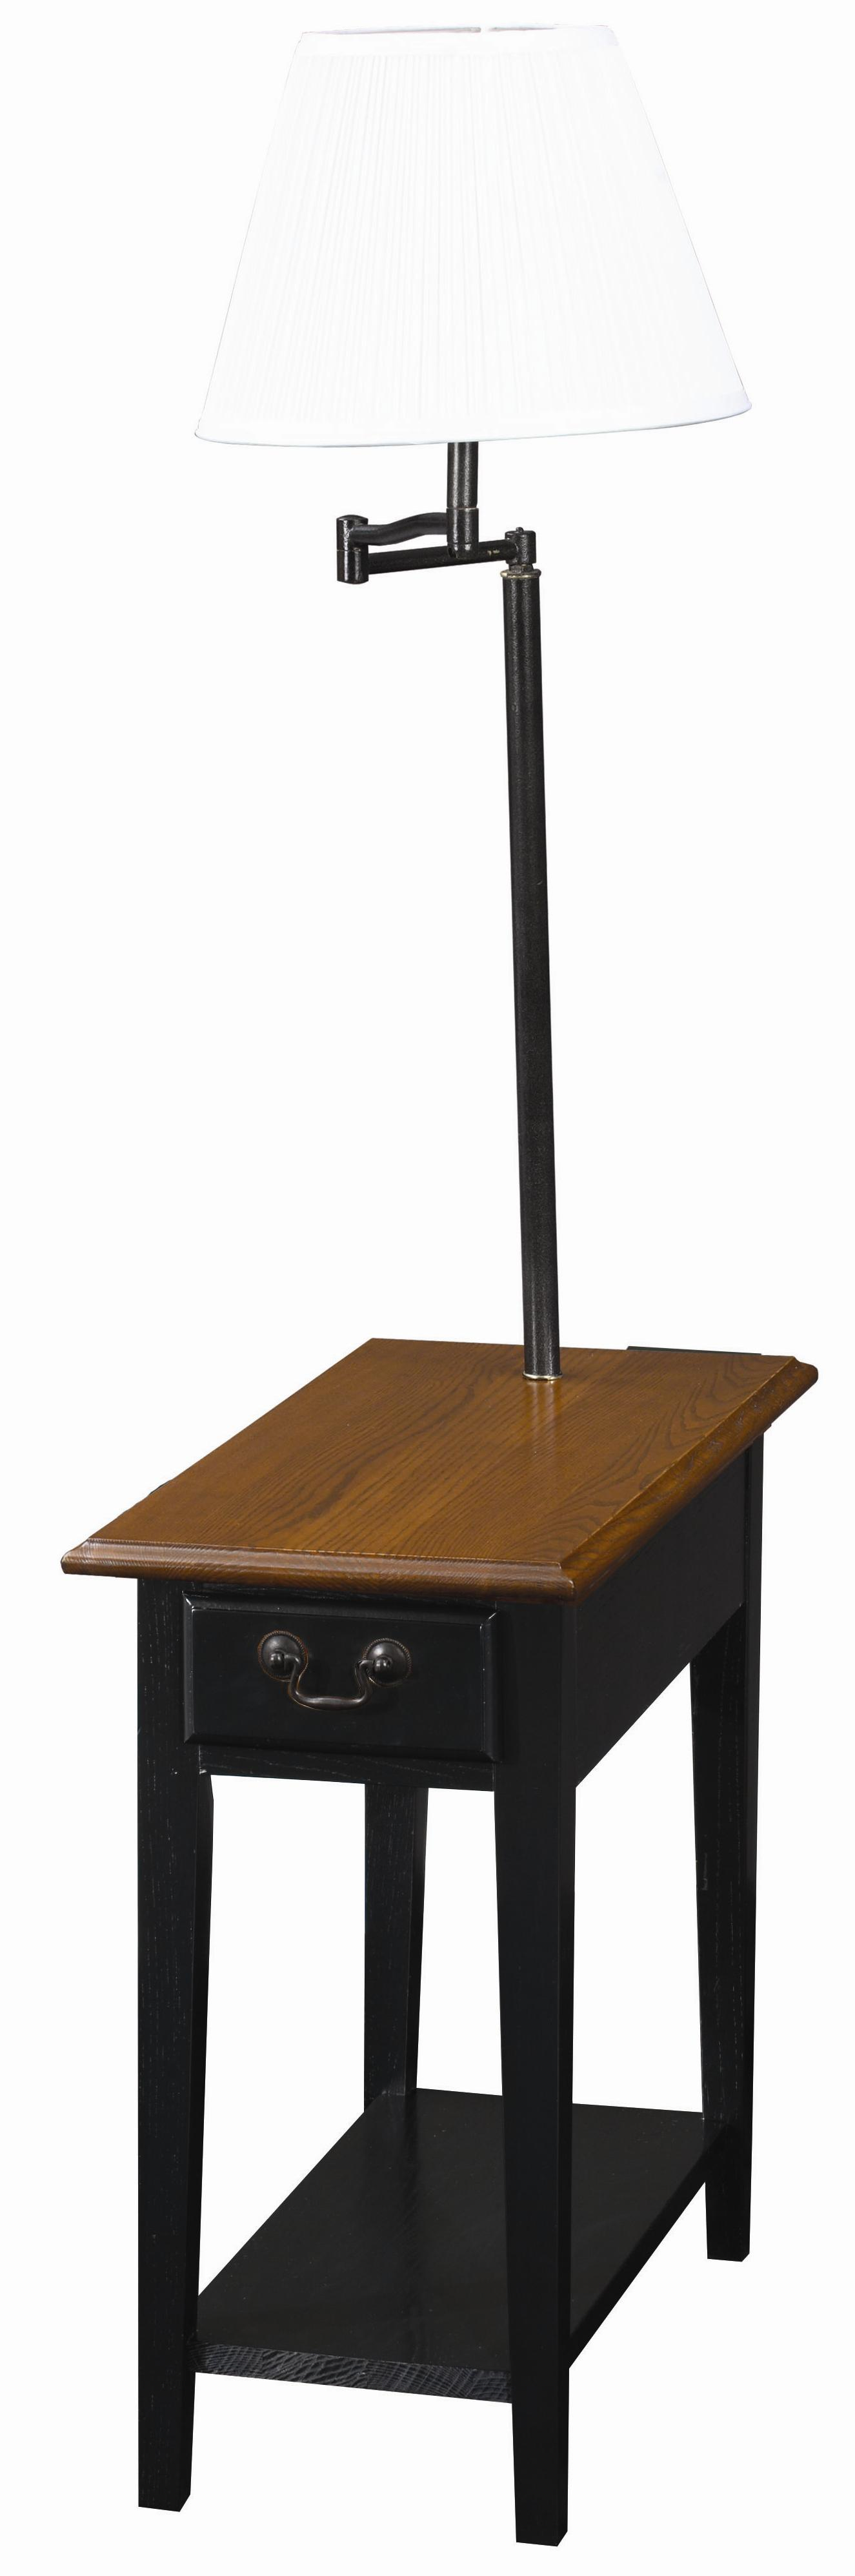 Favorite Finds Chairside Lamp Table by Leick Furniture at Lucas Furniture & Mattress